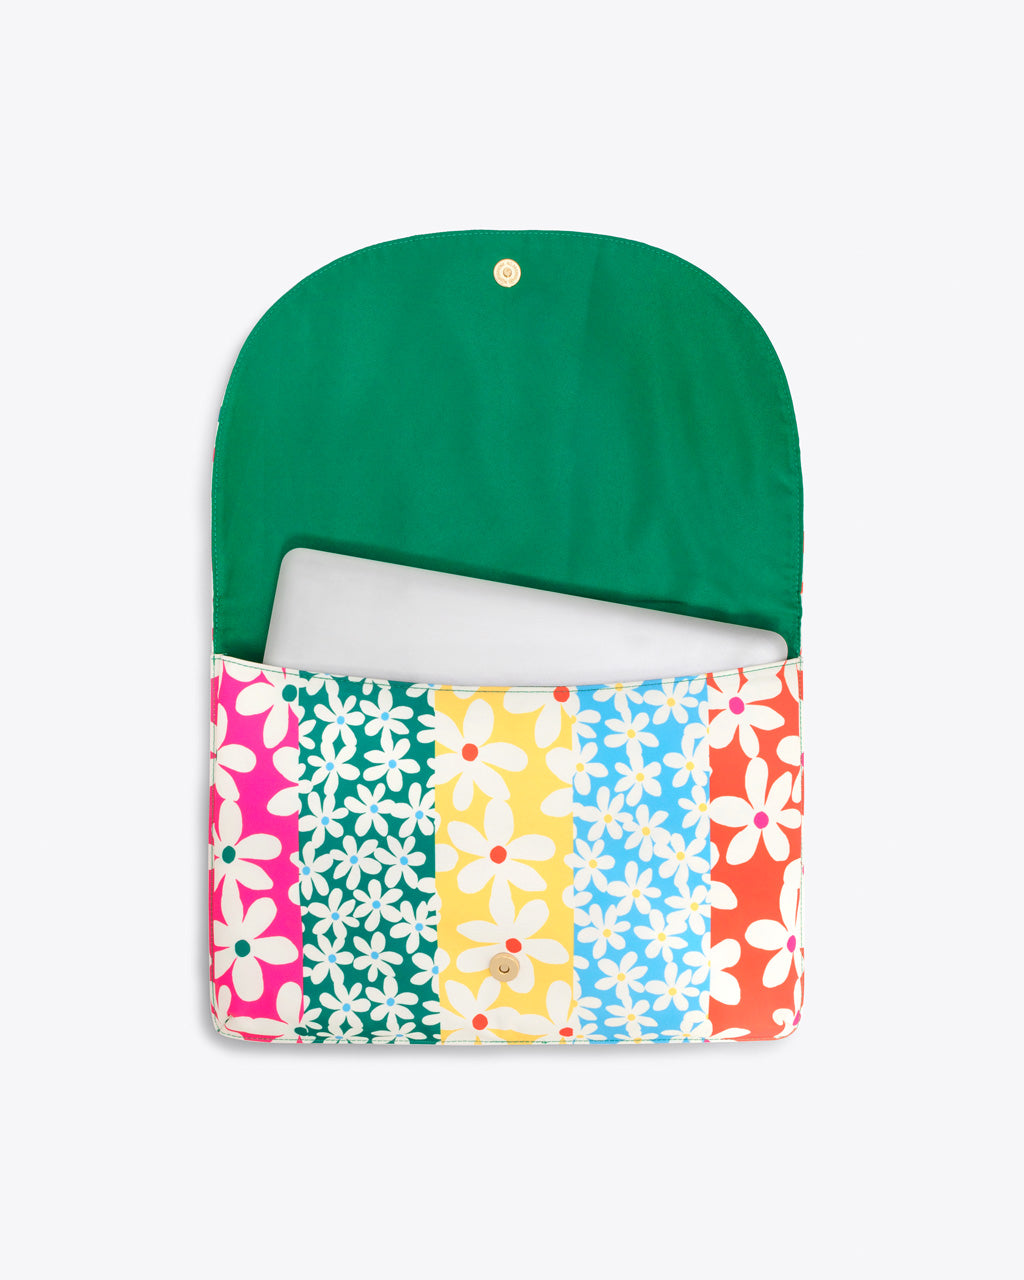 daisy laptop sleeve with a green interior and shown with 15-inch laptop